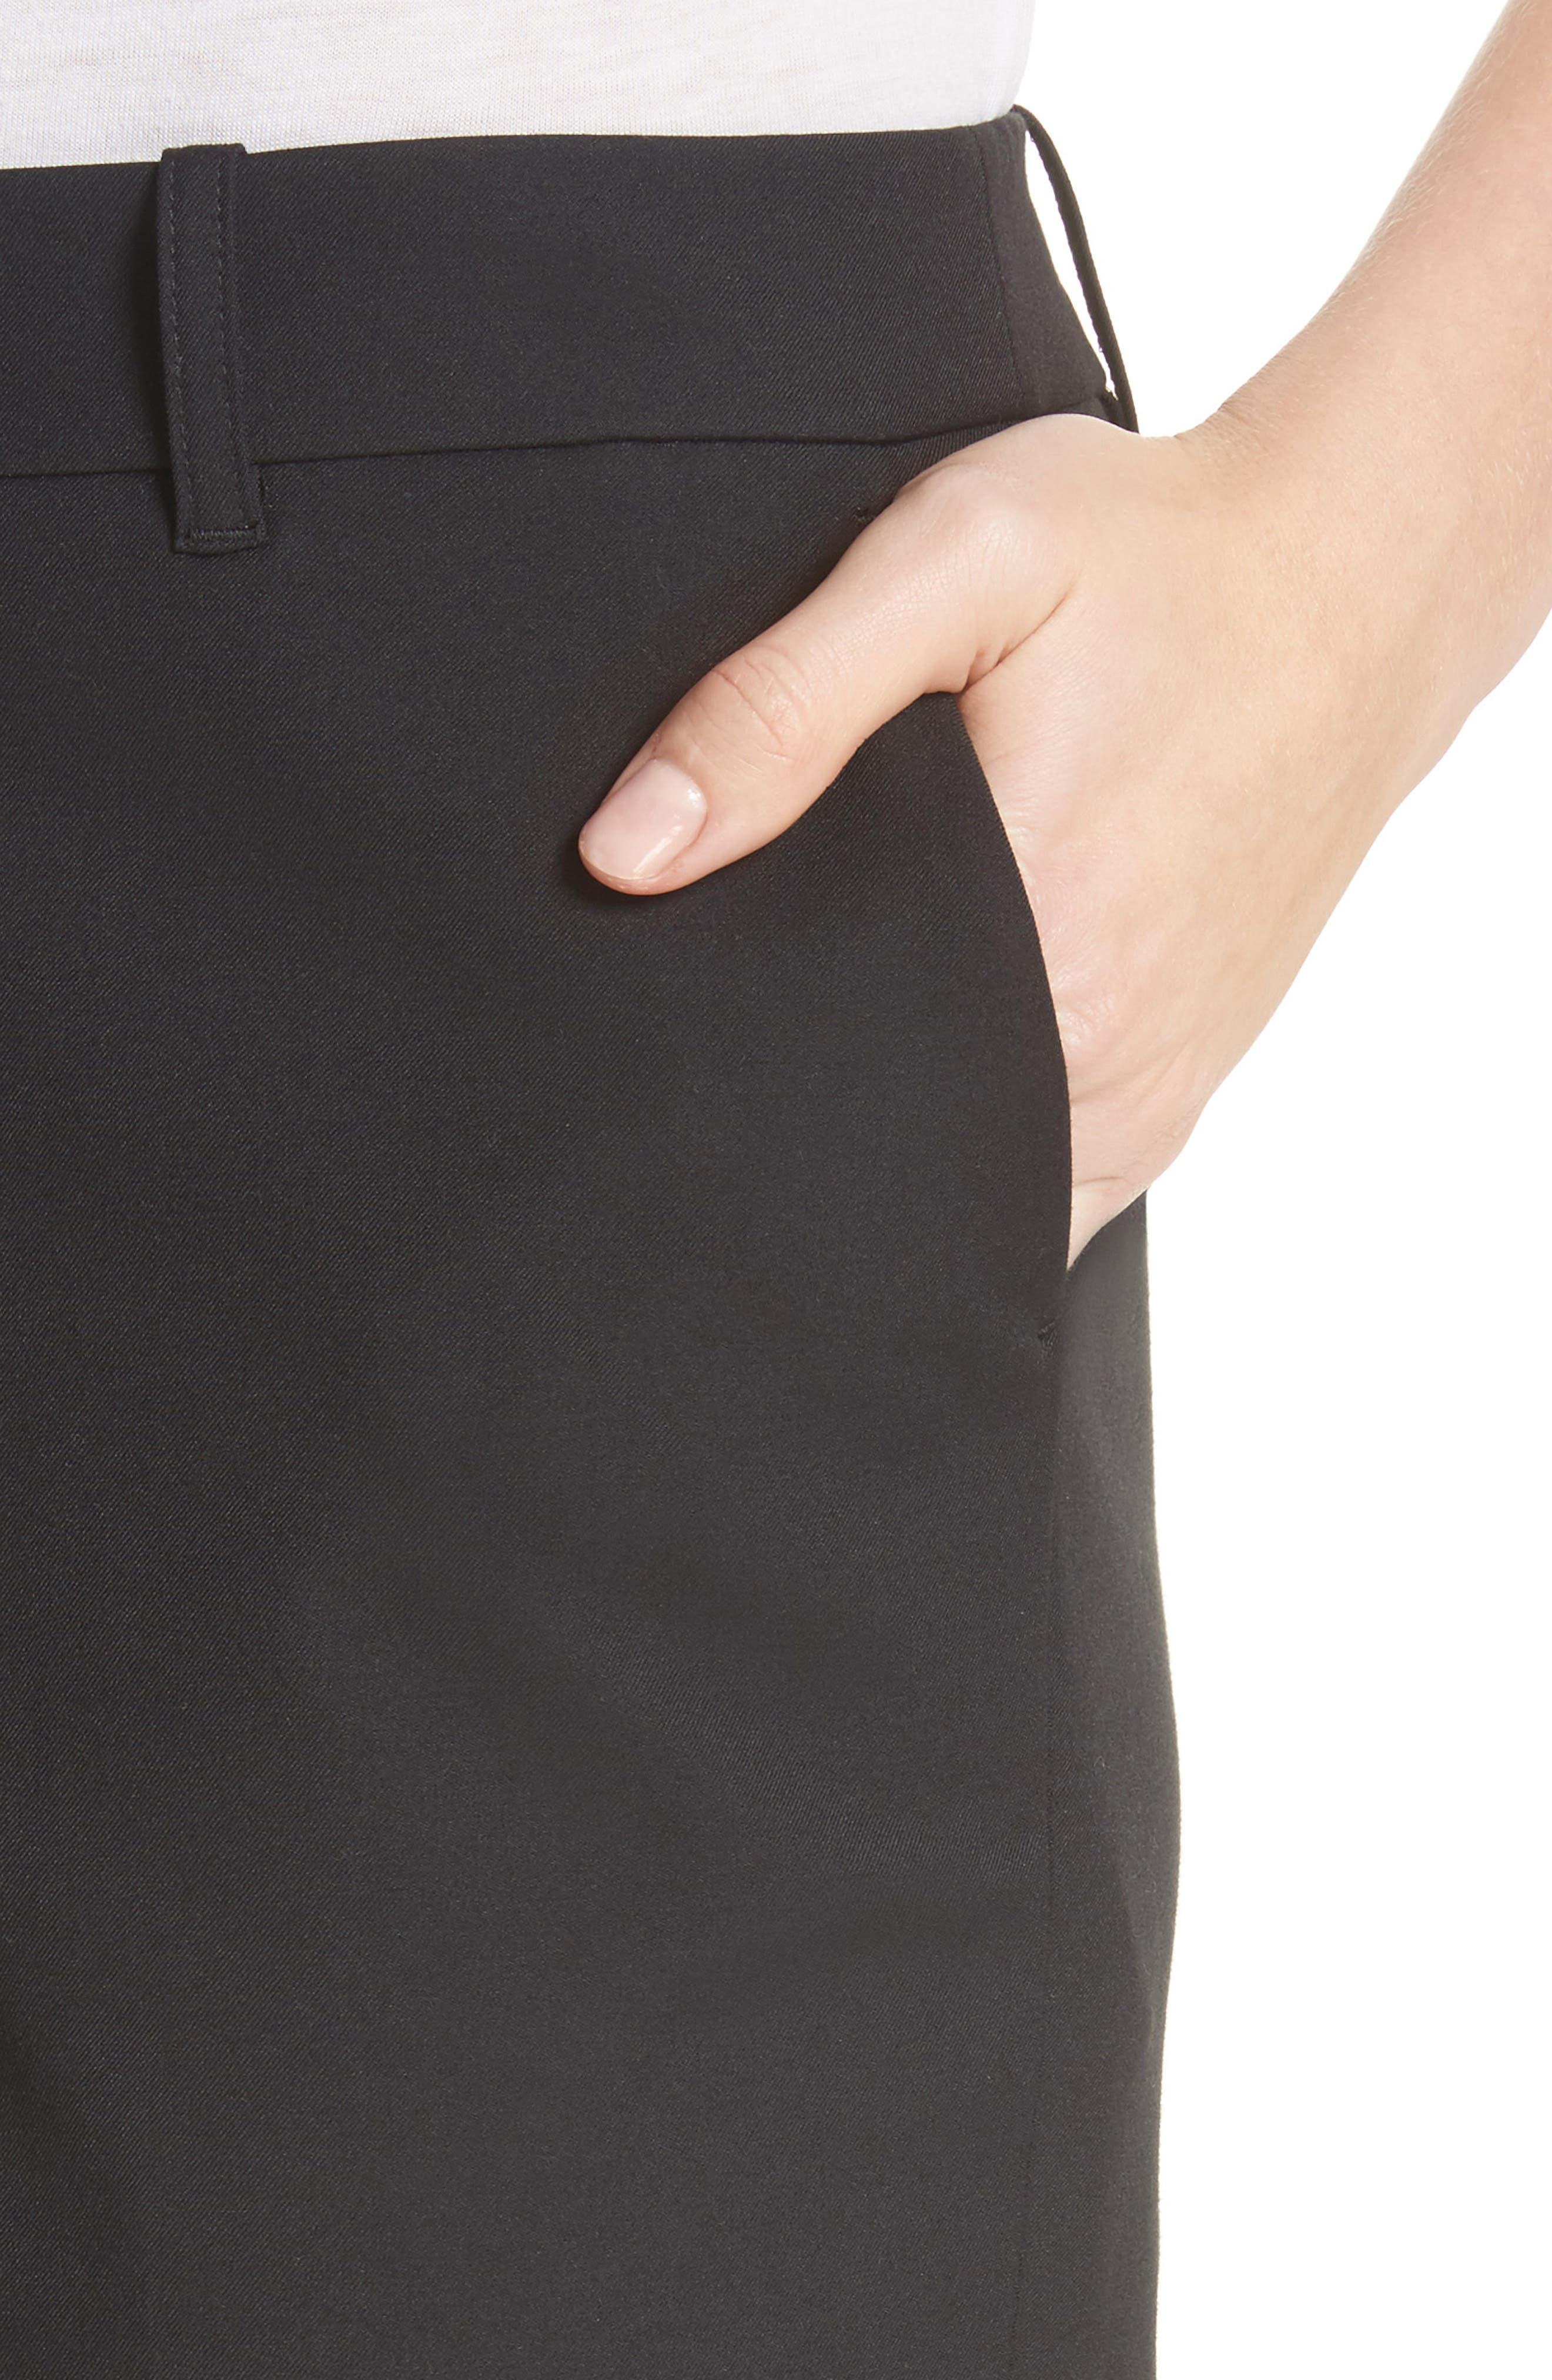 Manhattan Bermuda Shorts,                             Alternate thumbnail 4, color,                             Black